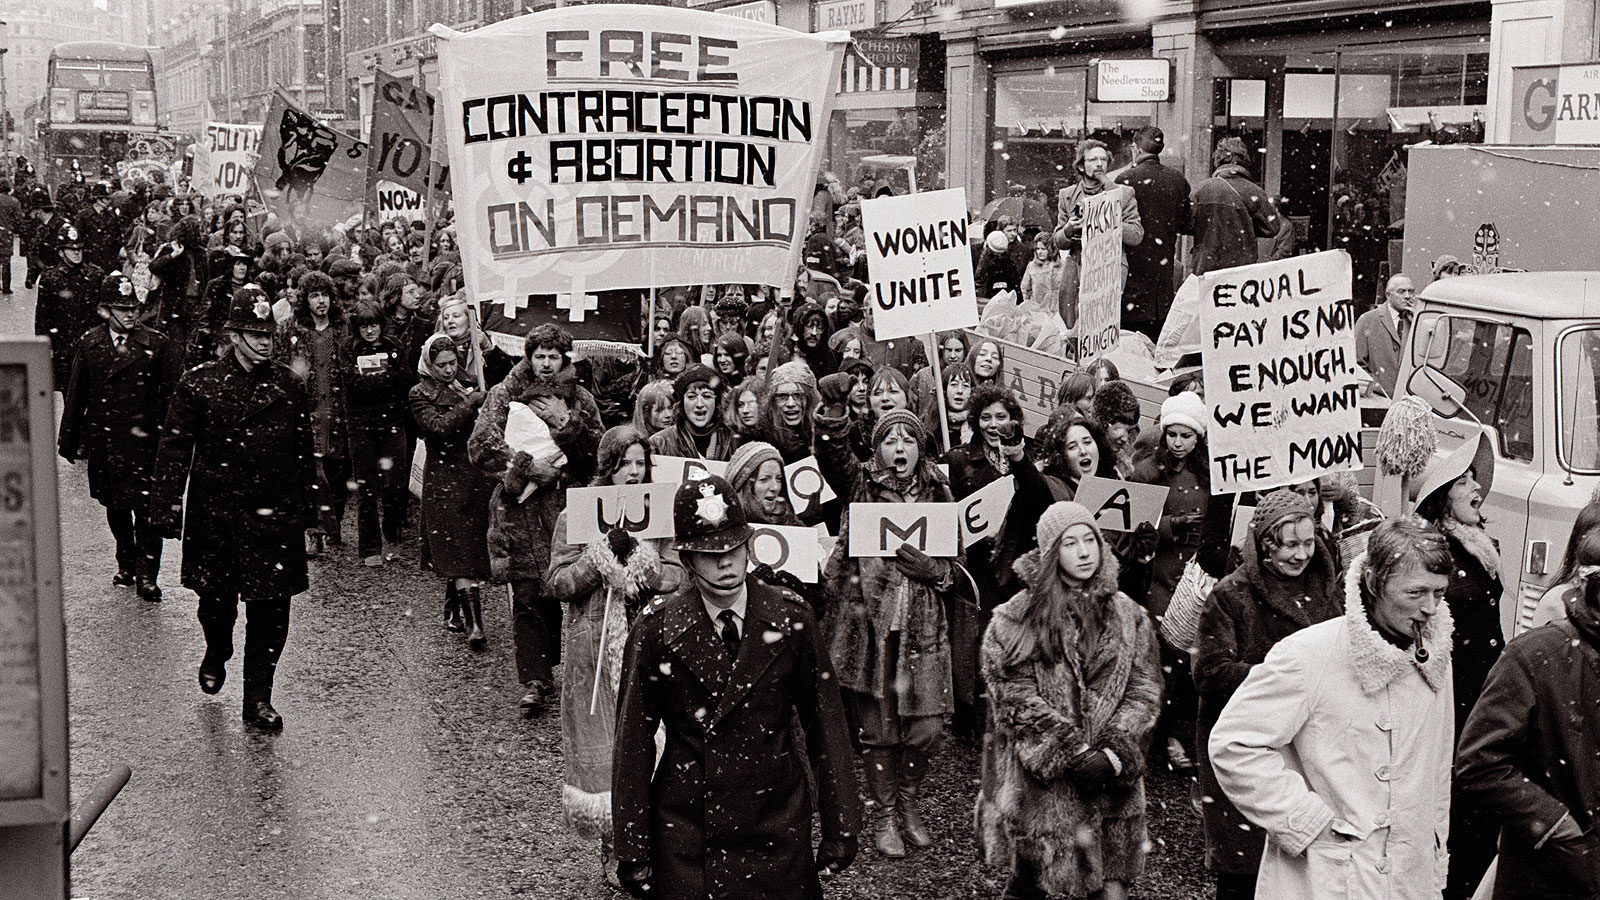 women's liberation The women's liberation movement says women should be given equal job opportunities and equal pay for equal work in family roles a woman's place is in the home.